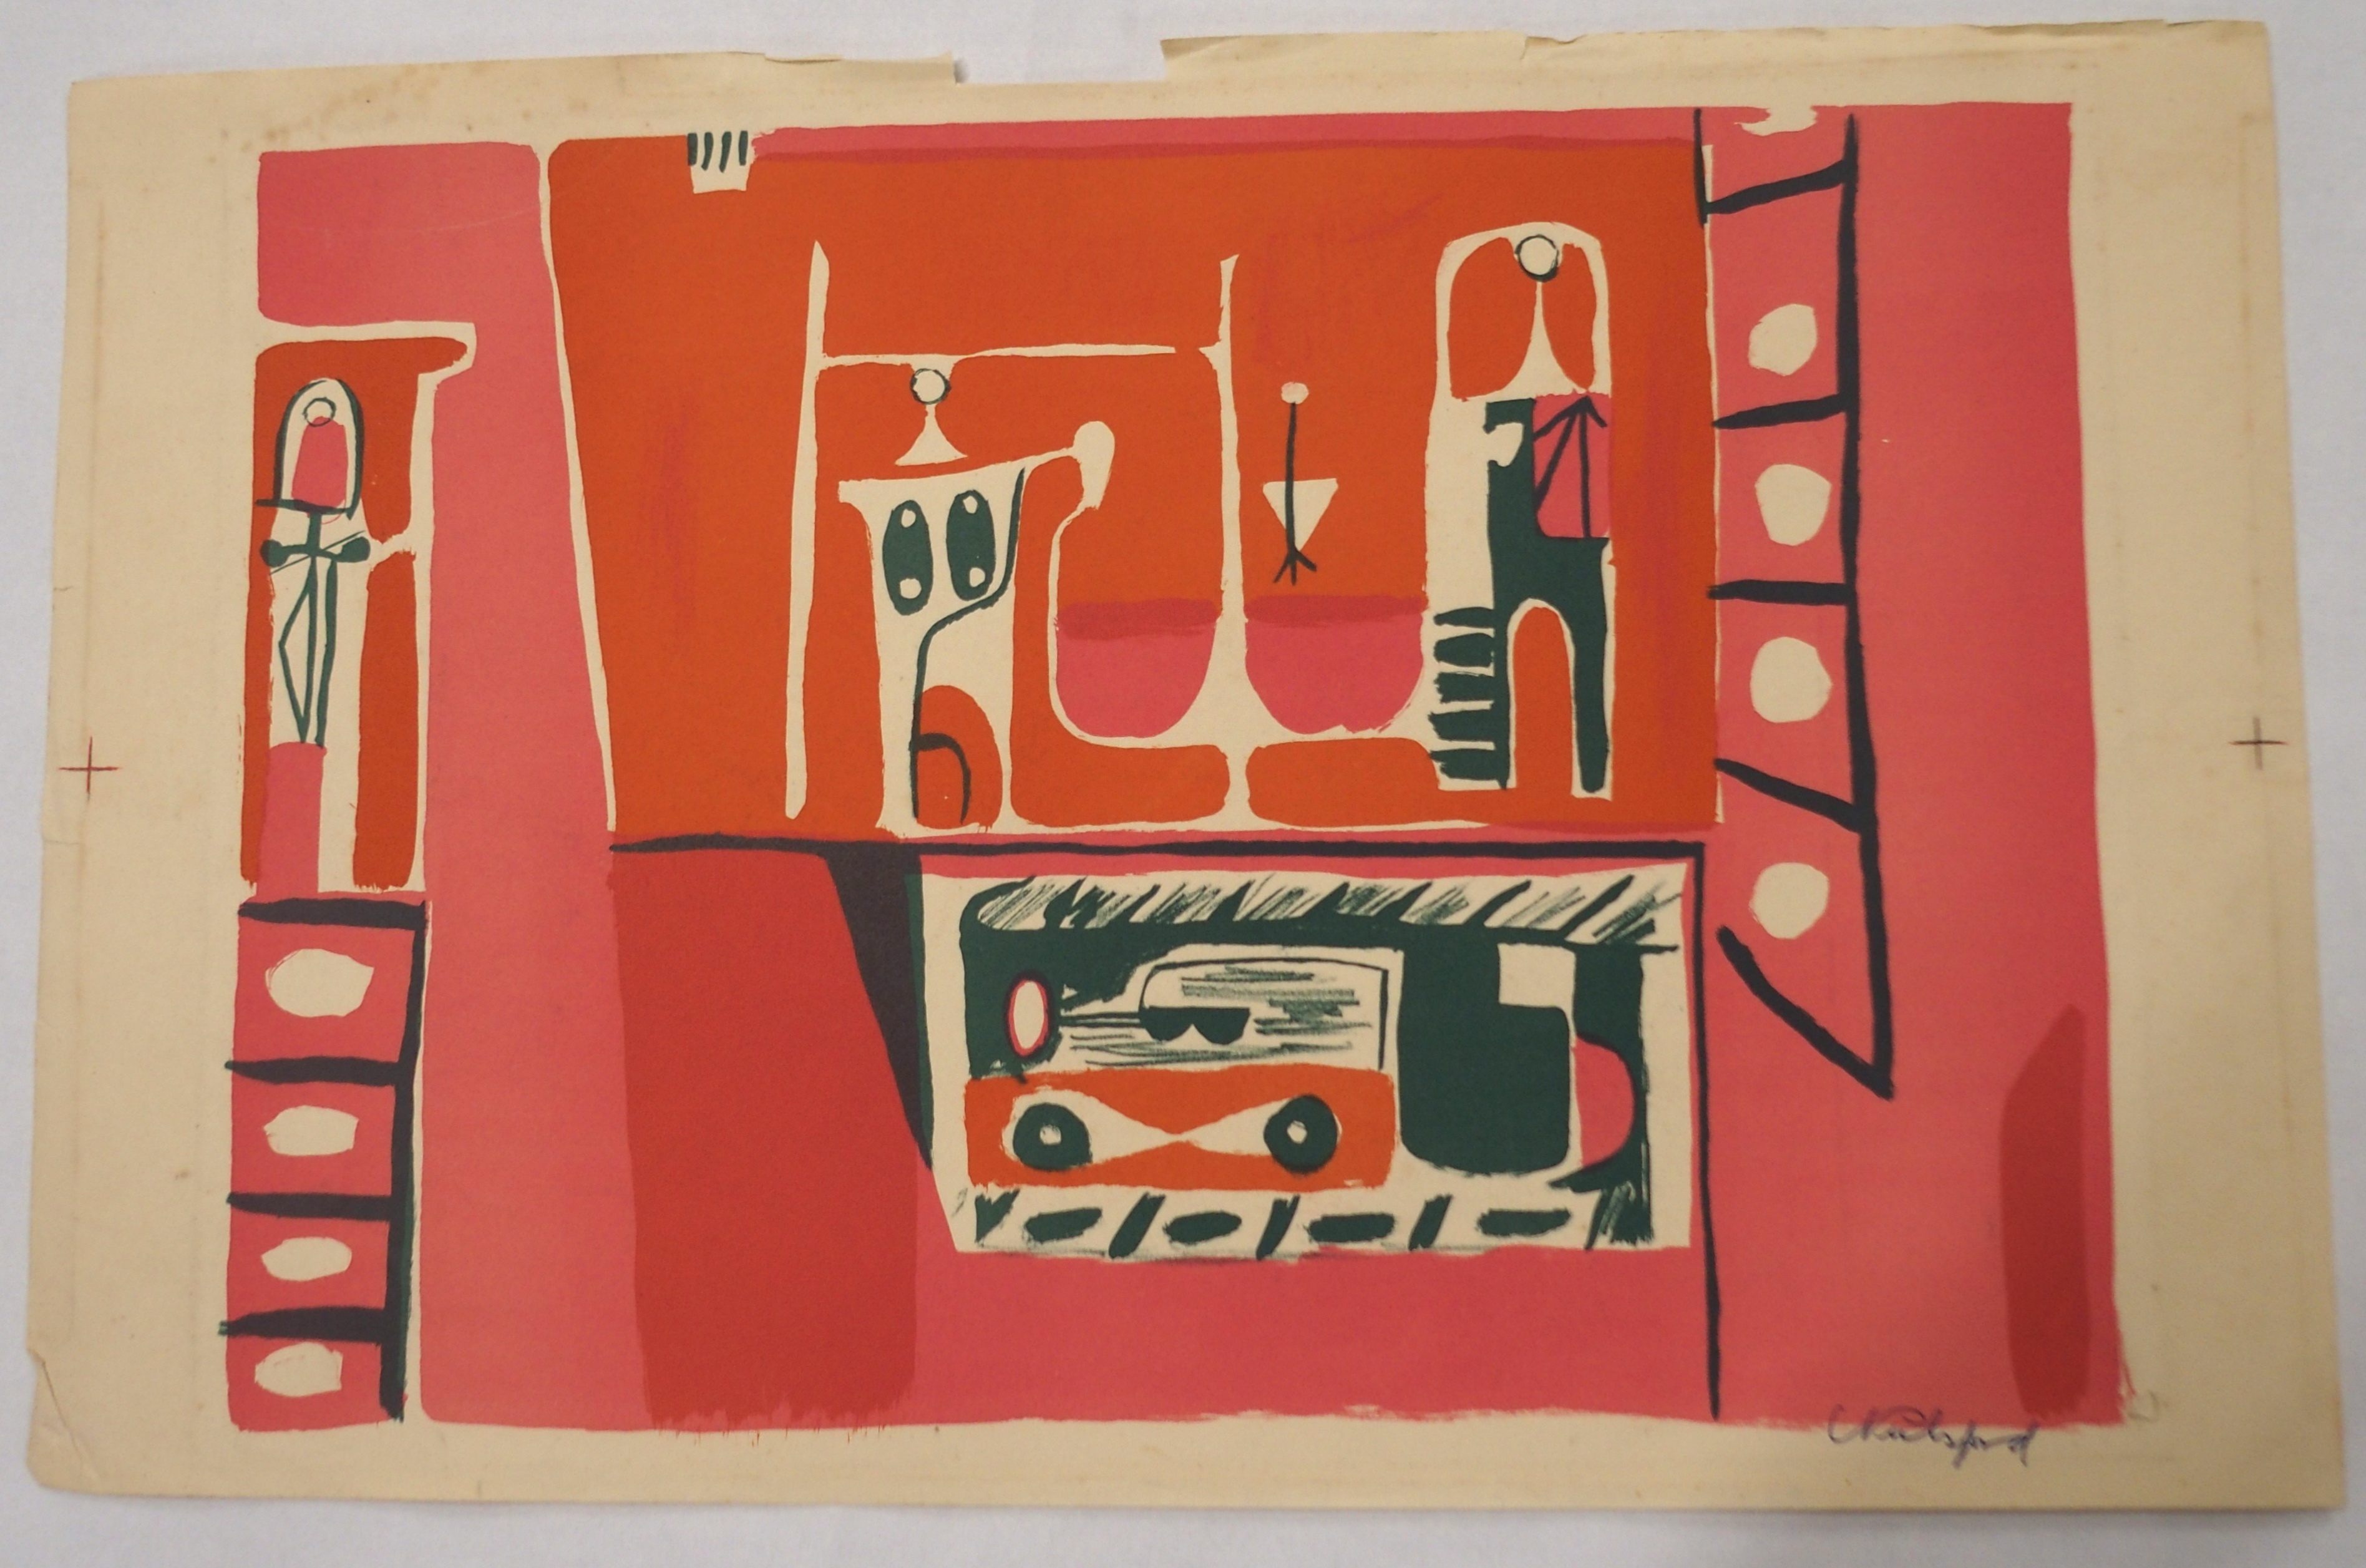 •CHARLES PULSFORD ARSA (SCOTTISH 1912-1989) FIGURES IN AN URBAN LANDSCAPE (1953) Colour lithograph - Image 2 of 3